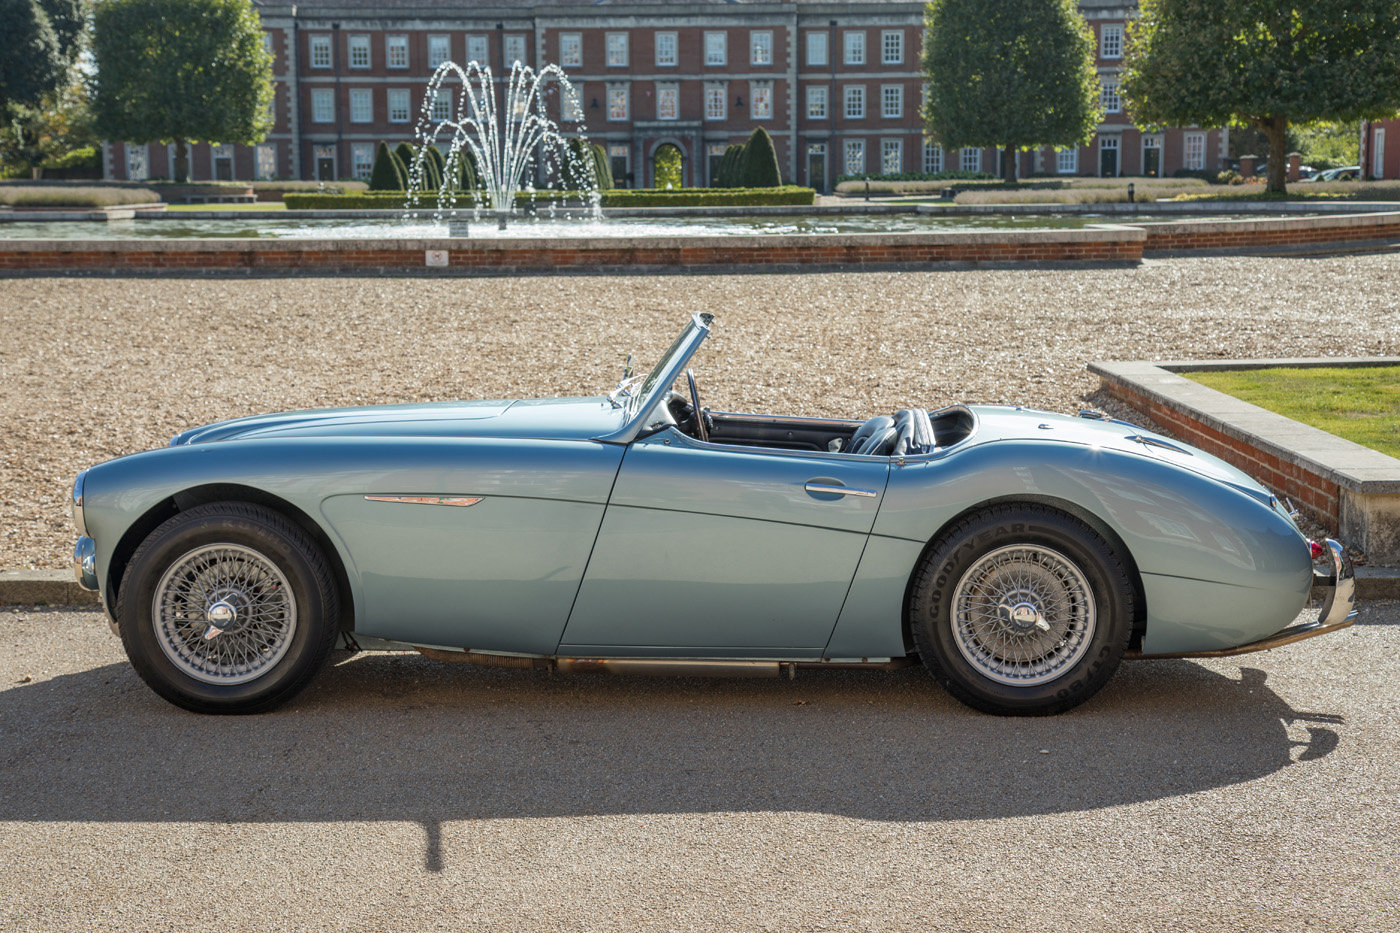 1961 Barn Find Austin Healey 3000 MkII BN7, 1of4 Healey Blue RHD  SOLD (picture 2 of 4)